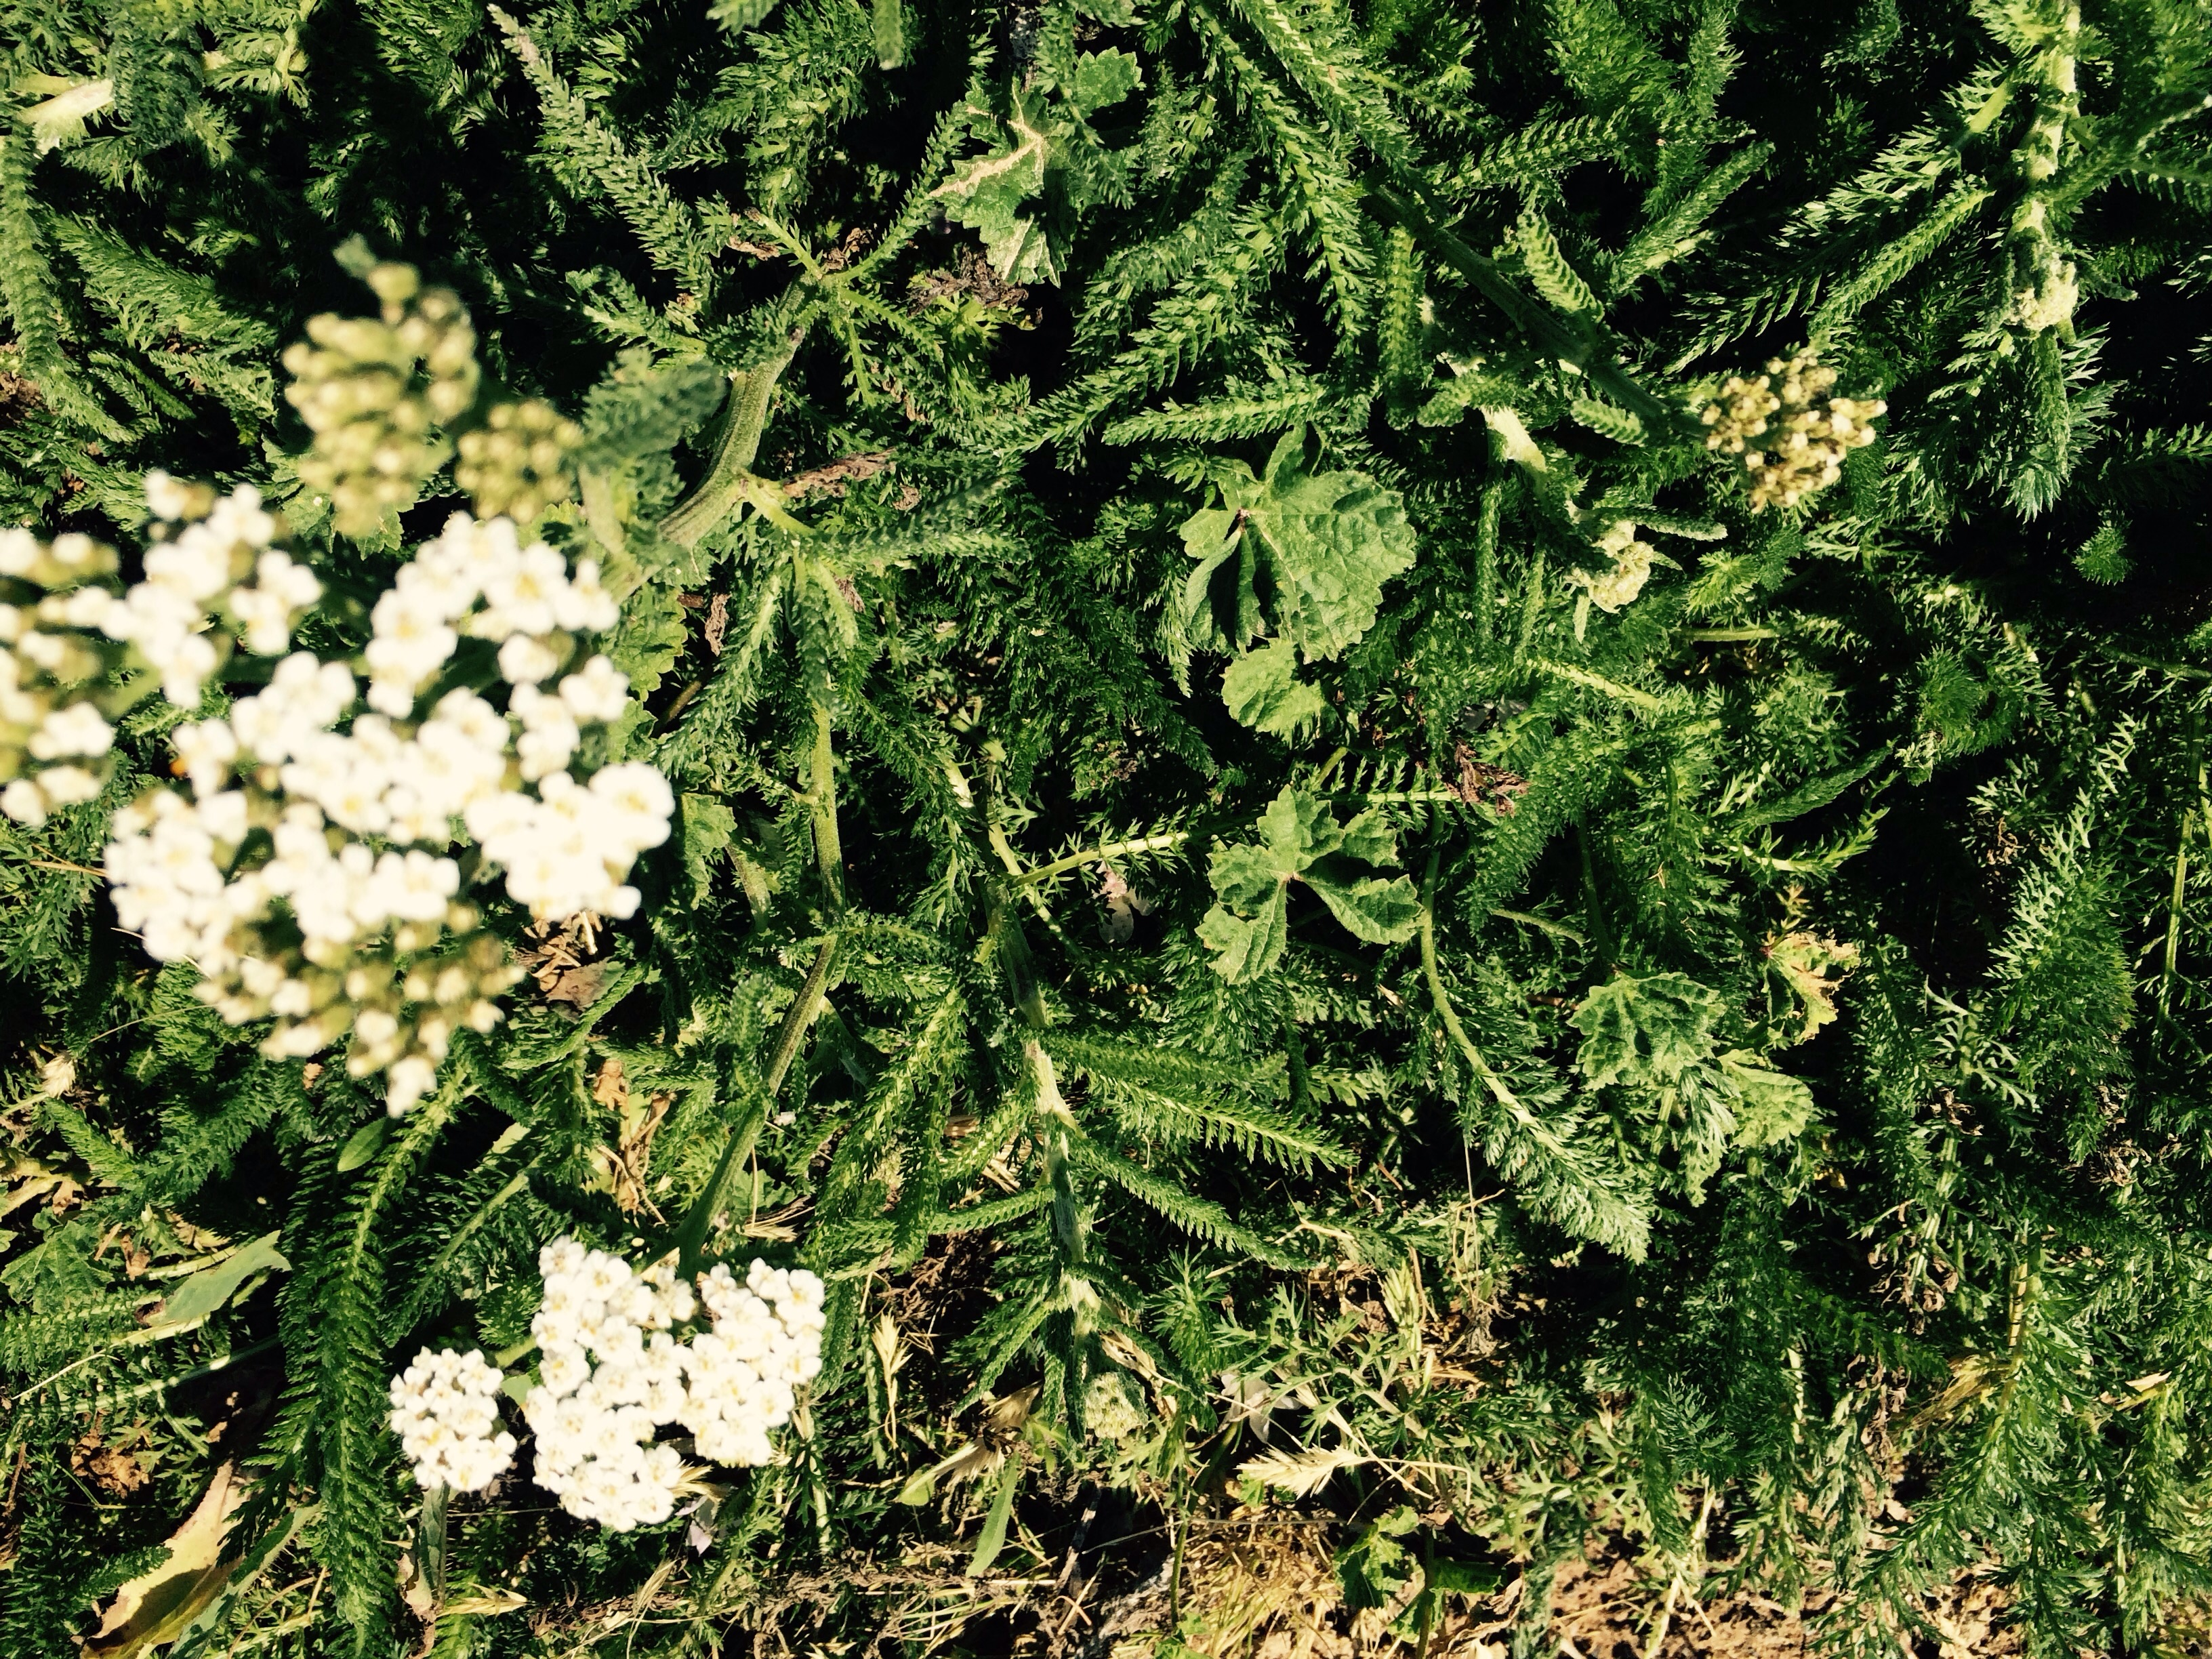 Yarrow blossoms are blossoming you can make some of the healthiest teas that boost your immune system